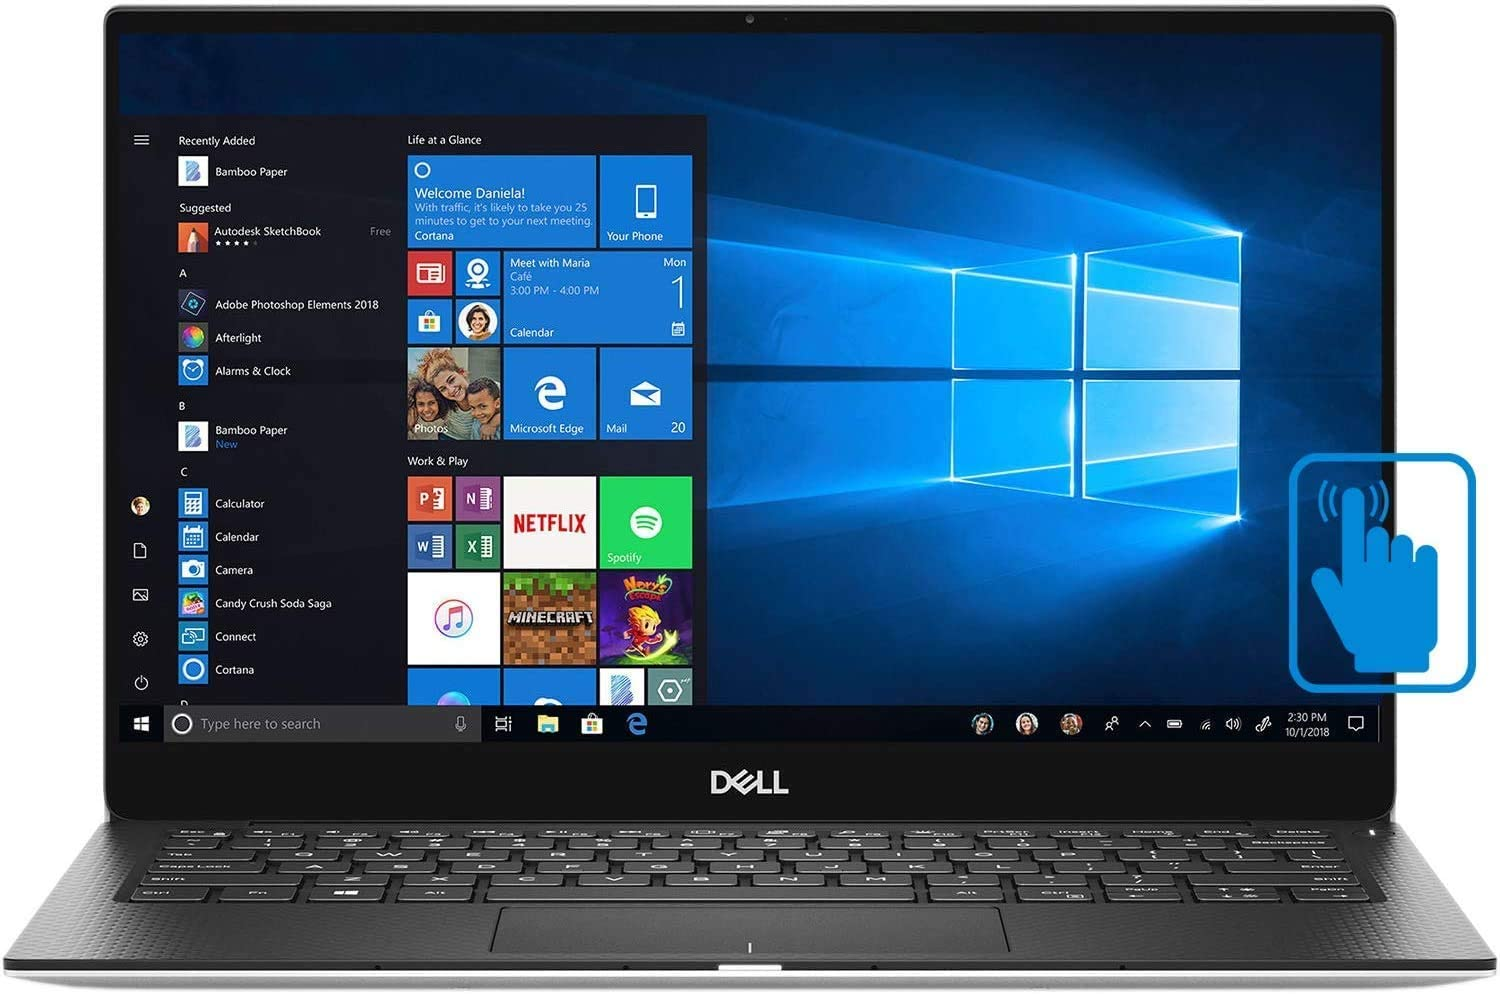 Dell XPS 13 7390 Thin and Light 13.3